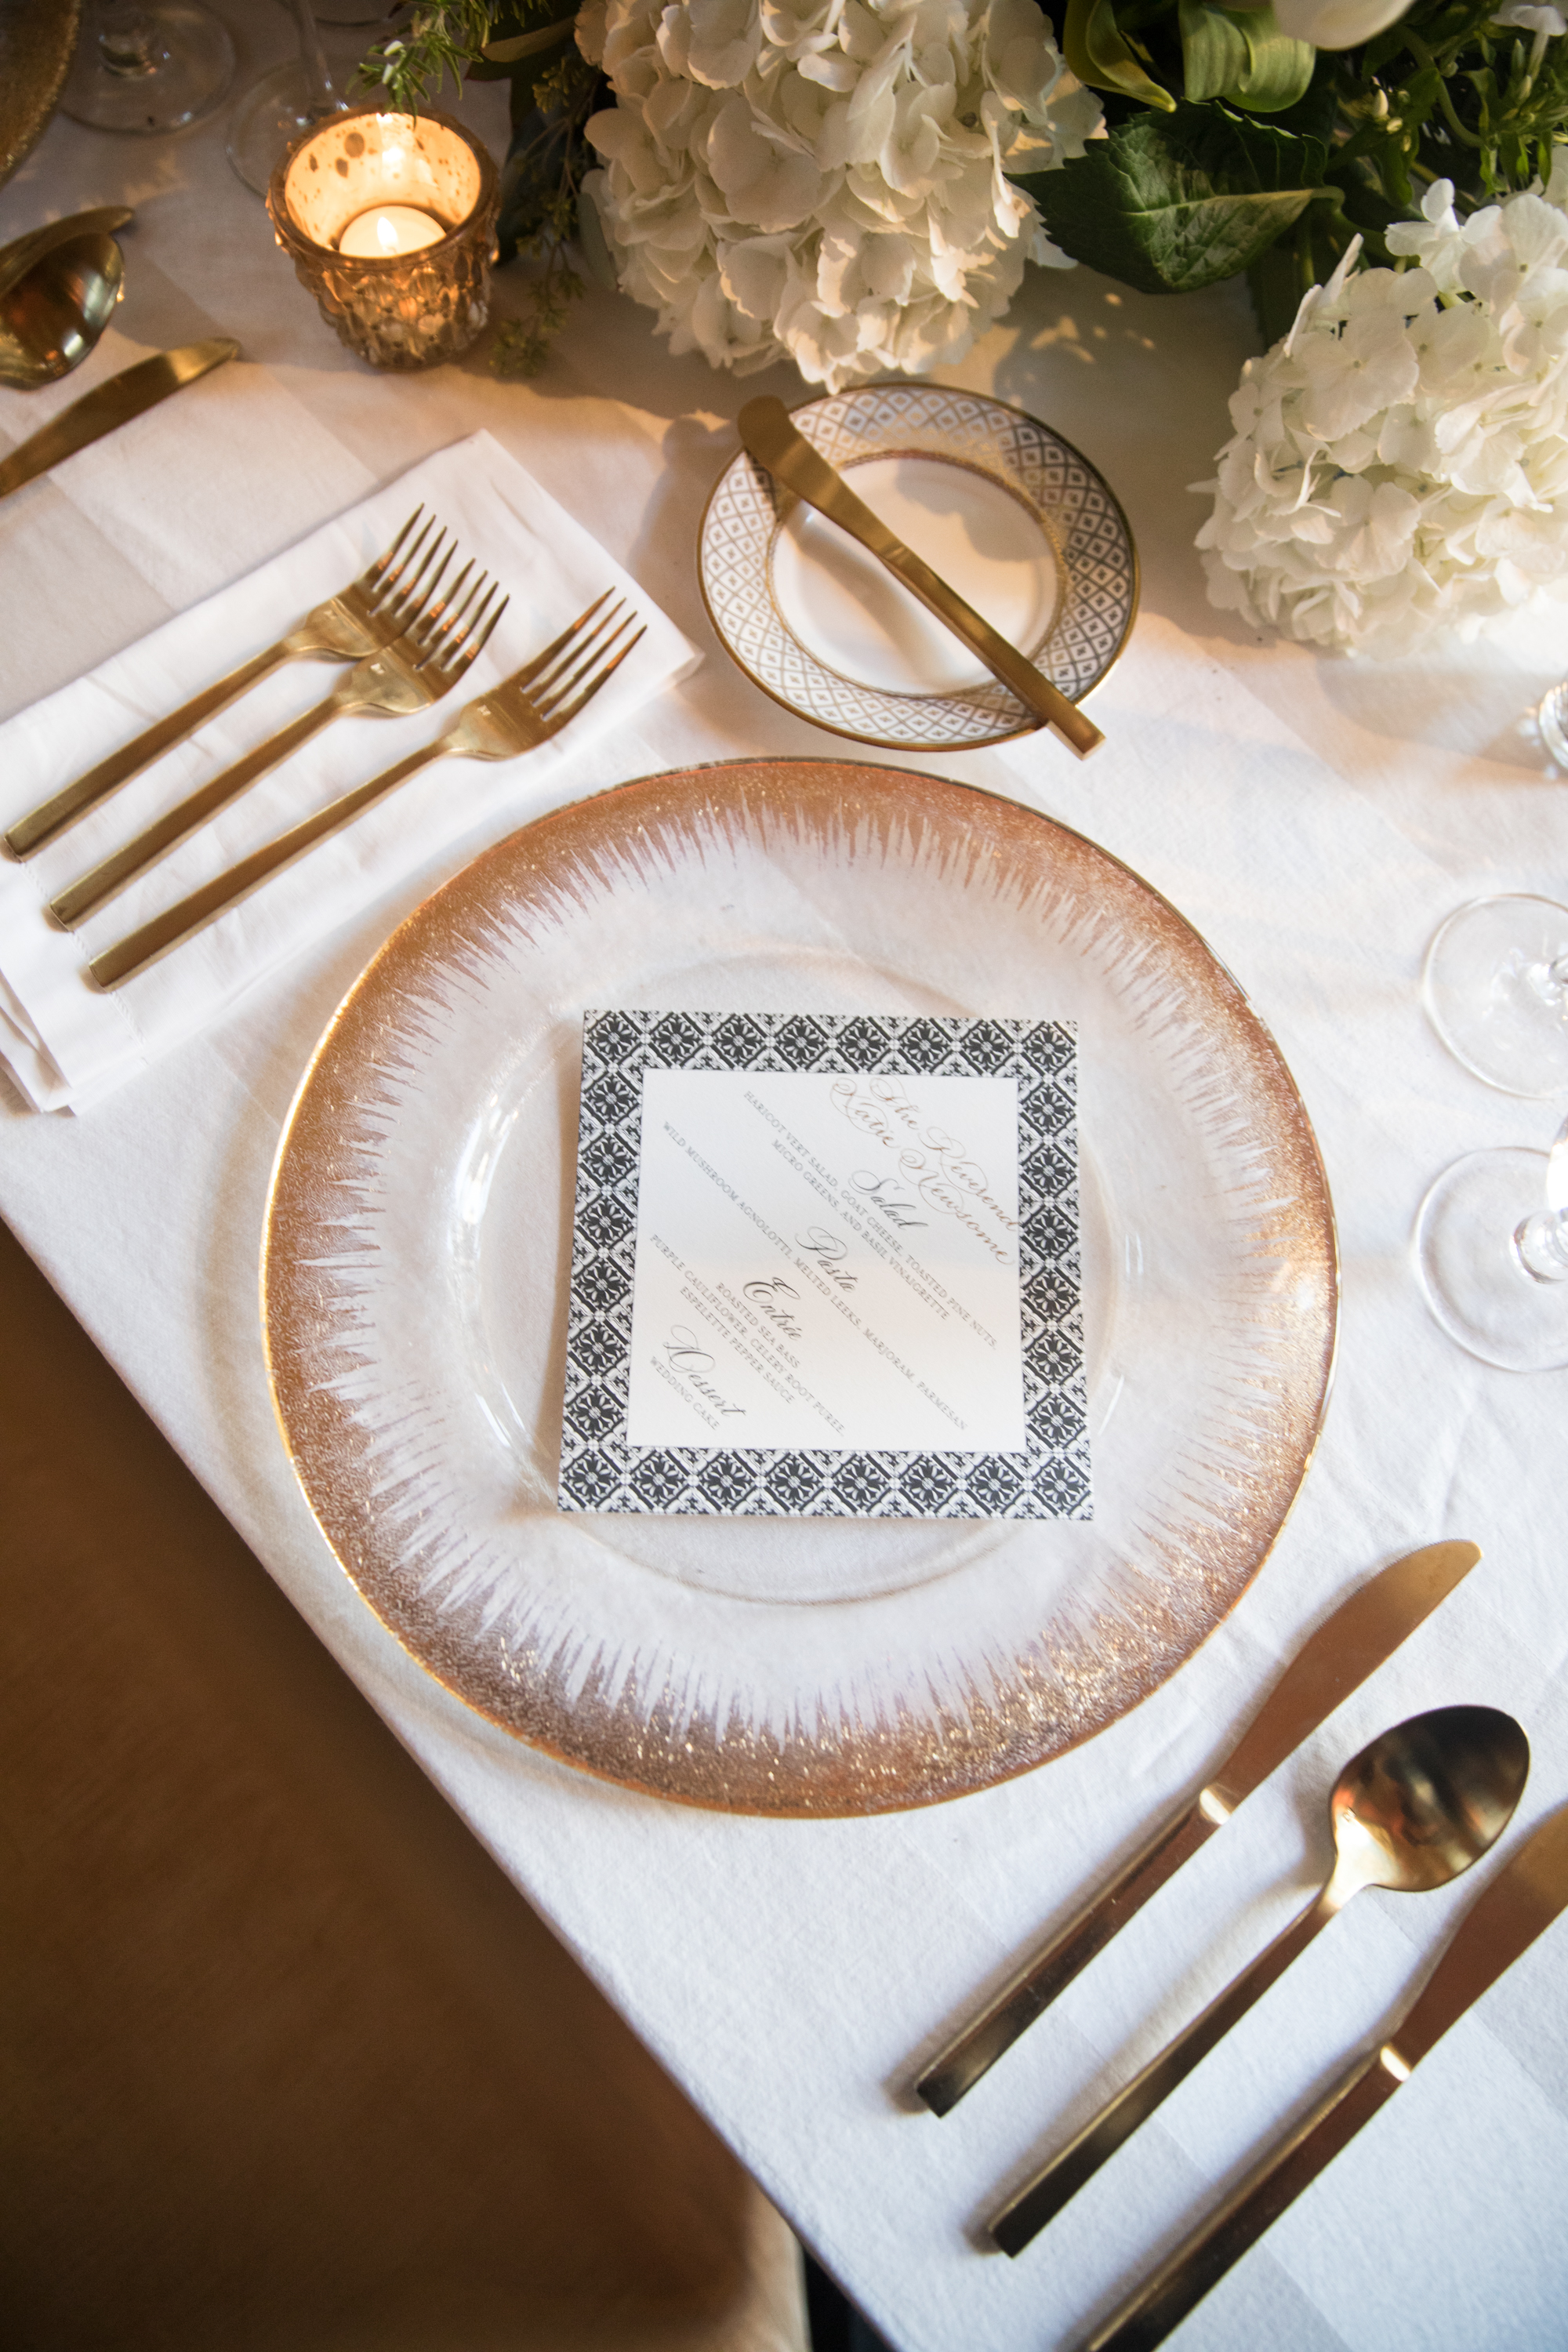 Tabletop Details - Dallas, Tx - Summer Wedding - Julian Leaver Events